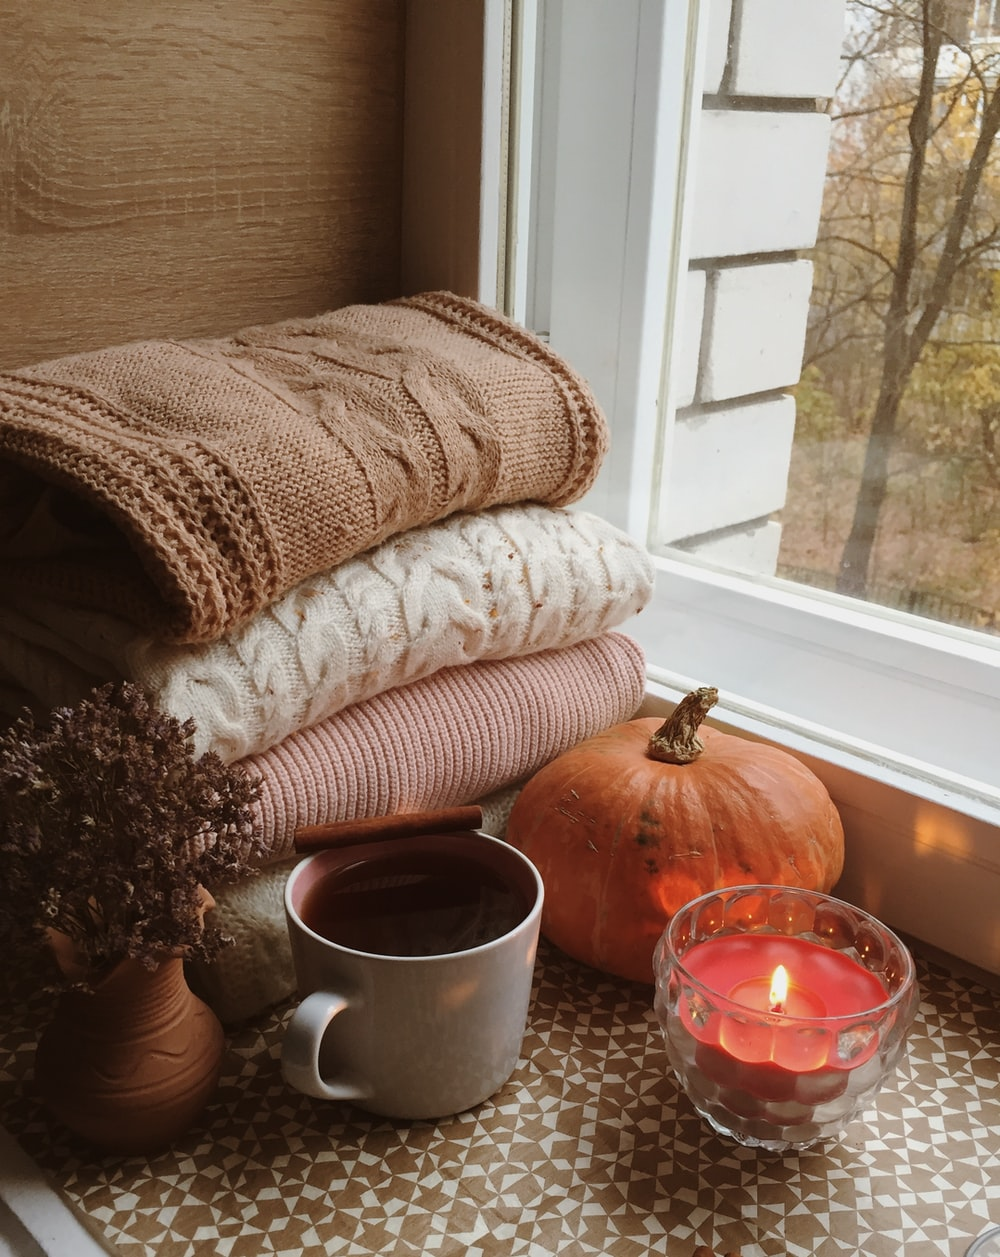 Autumn Aesthetic Pictures   Download Free Images on Unsplash